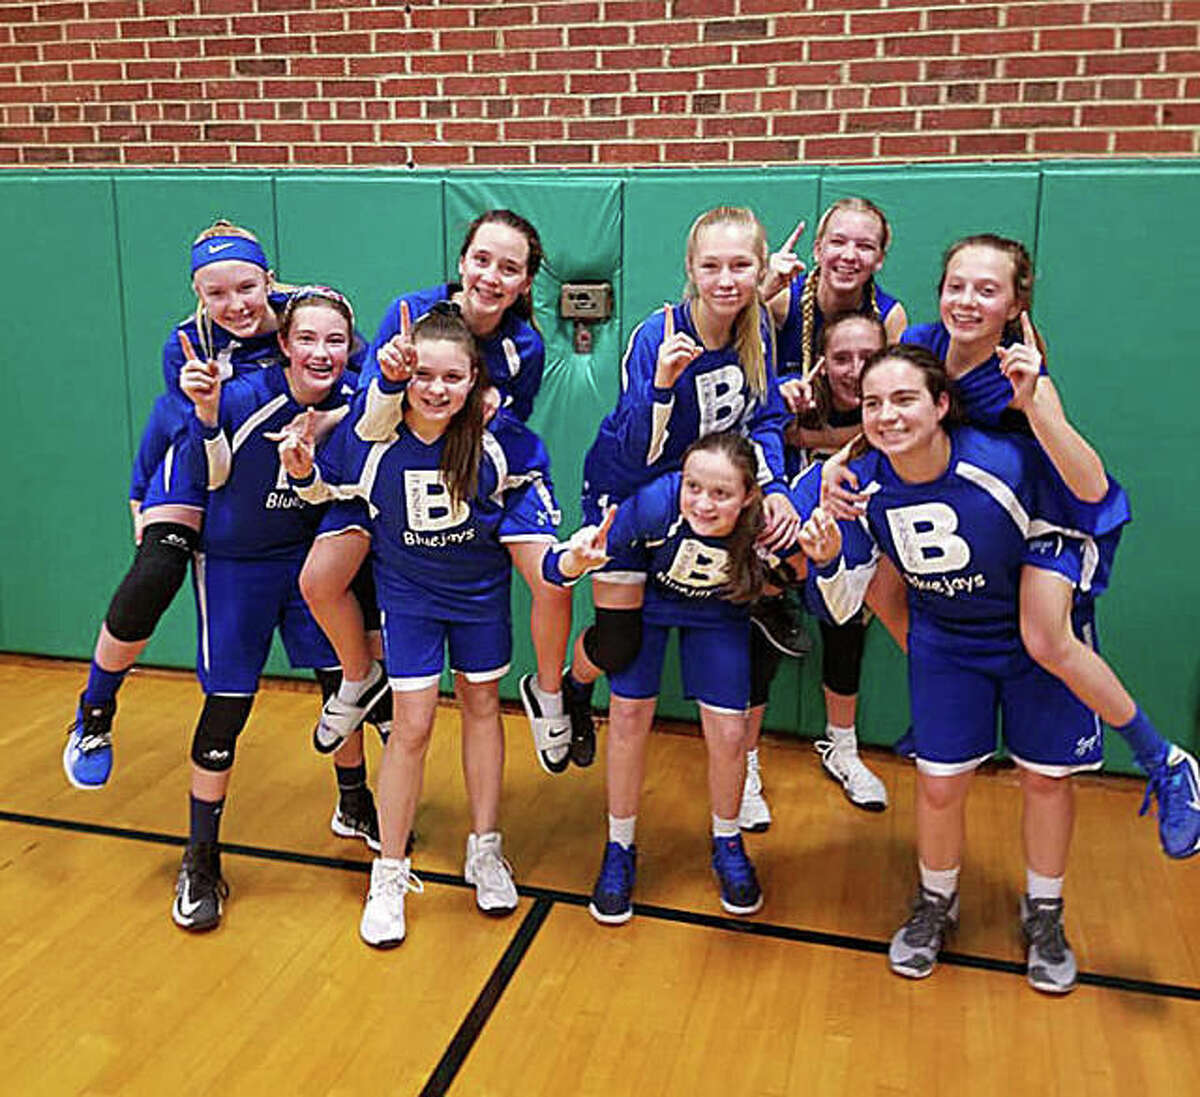 The St. Boniface Bluejays eighth-grade girls' basketball team recently finished an undefeated season in the Southern Springfield Catholic Athletic Conference. Players include, in no particular order, Emily Travnicek, Caroline Marcus, Sarah Brase, Ellie Antonini, Katie Gilbertson, Sami Oller, Gwen Anderson, Ella Heddinghaus, Brianna Paul, Claire Stanhaus. The Bluejays are coached by Kyle Anderson, Brian Stanhaus and Mikki Travnicek.